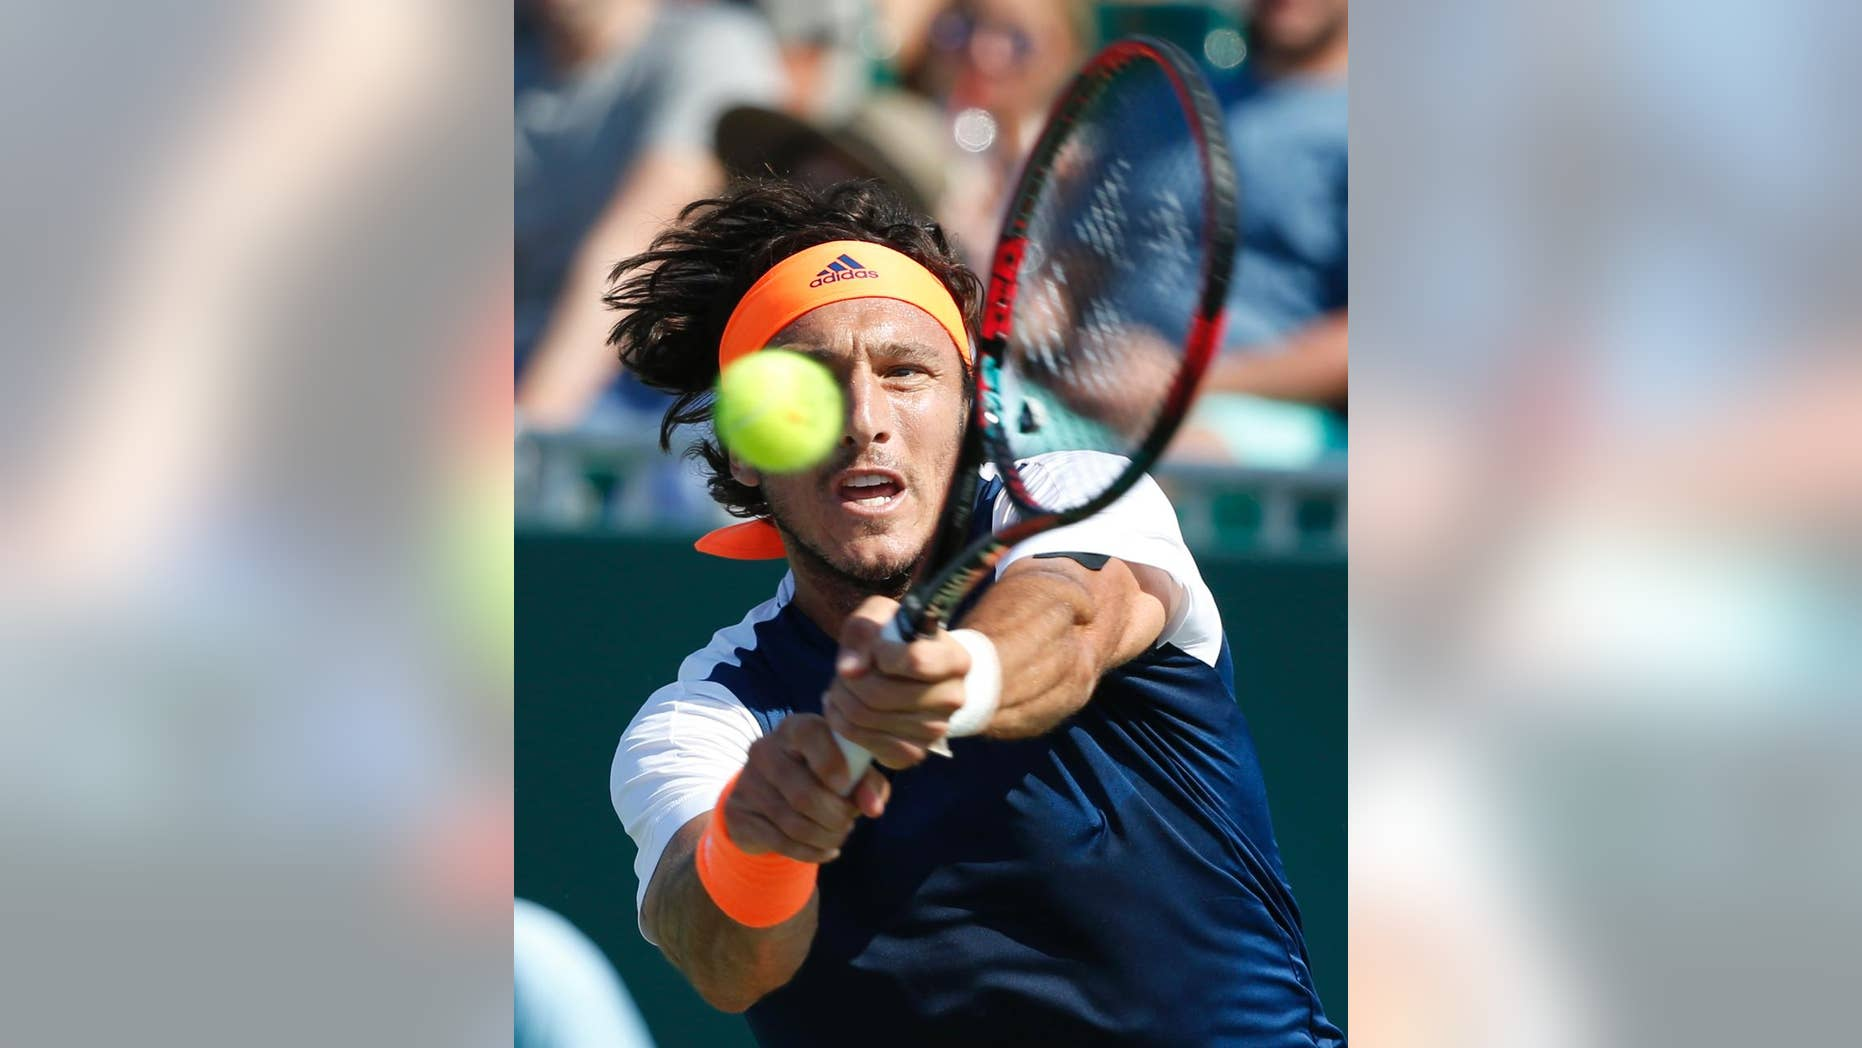 File.- In this March 22, 2017 file photo Juan Monaco returns a shot from Federico Delbonis, both of Argentina, during a tennis match at the Miami Open in Key Biscayne, Fla. Monaco, 33, announced Monday May 15 his retirement from competition.(AP Photo/Wilfredo Lee, File)